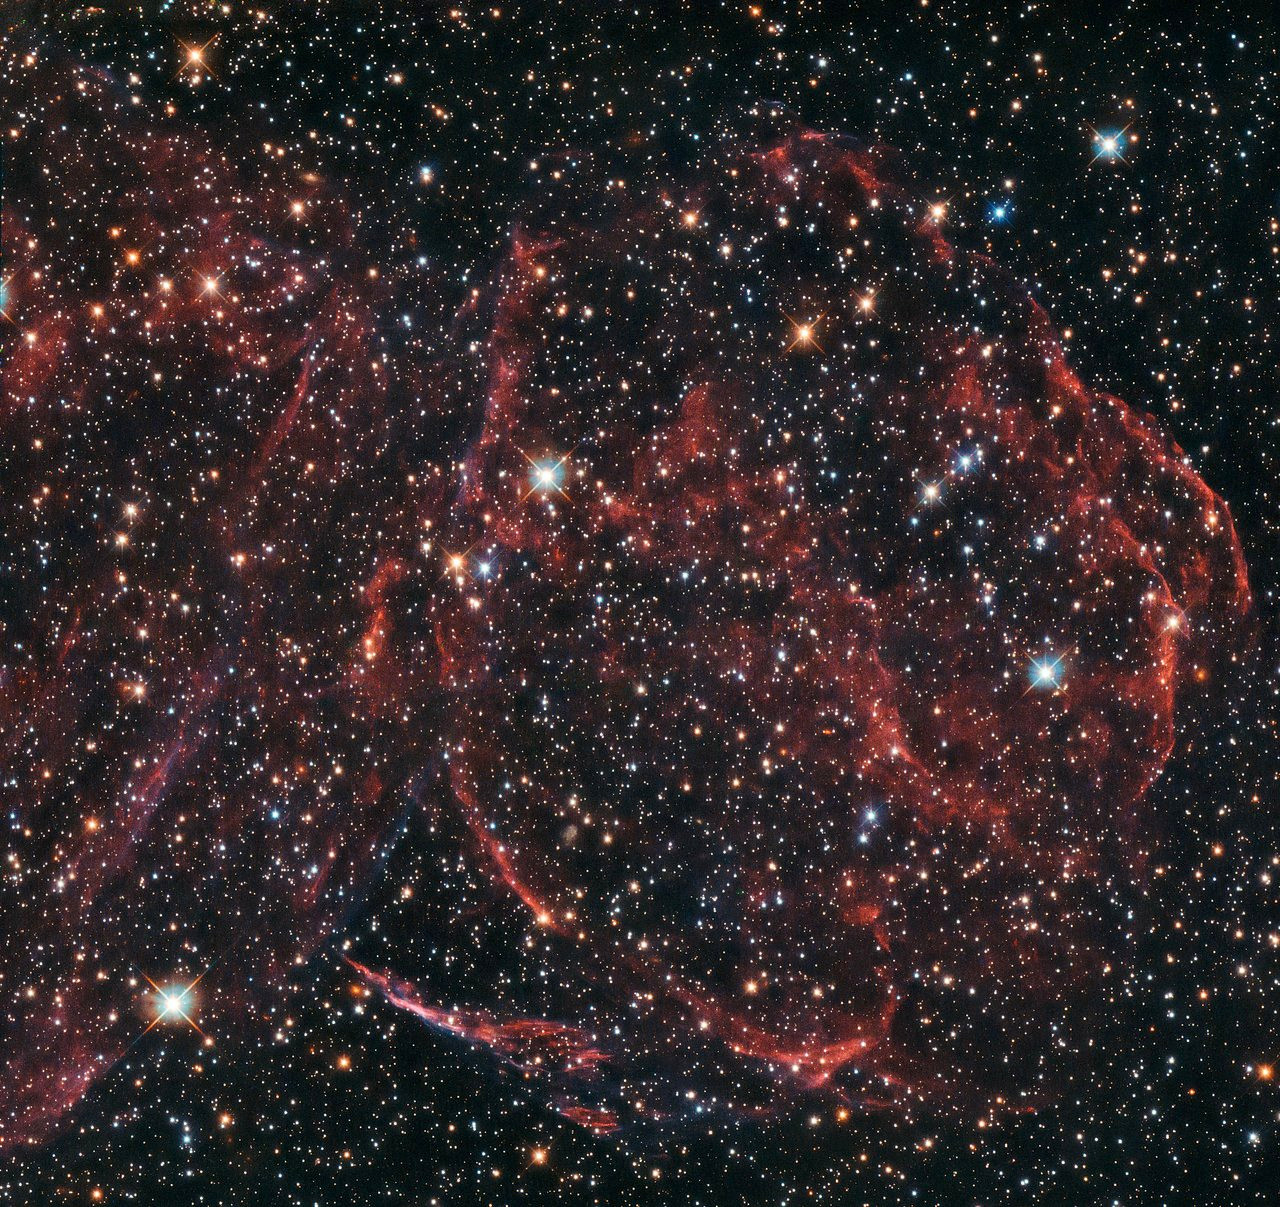 Supernova remnant DEM L316A lies in the Large Magellanic Cloud some 160,000 light-years away in the far southern constellation of Dorado. Image credit: ESA/Hubble & NASA, Y. Chu.